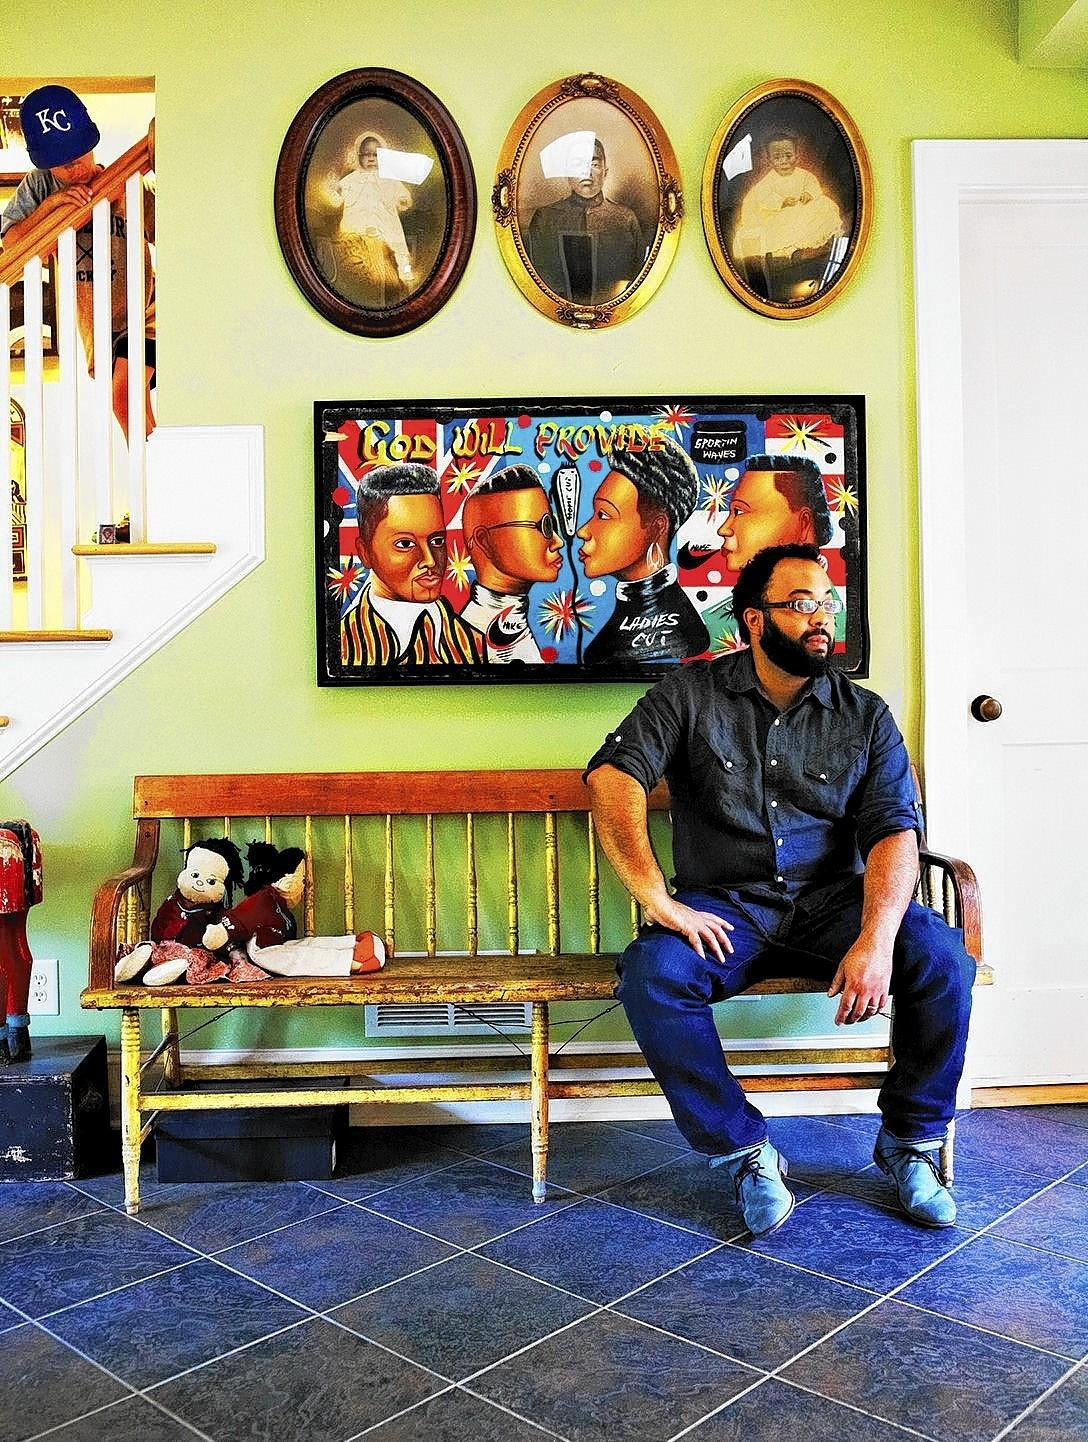 Kevin Young will appear at a Printers Row event March 13.